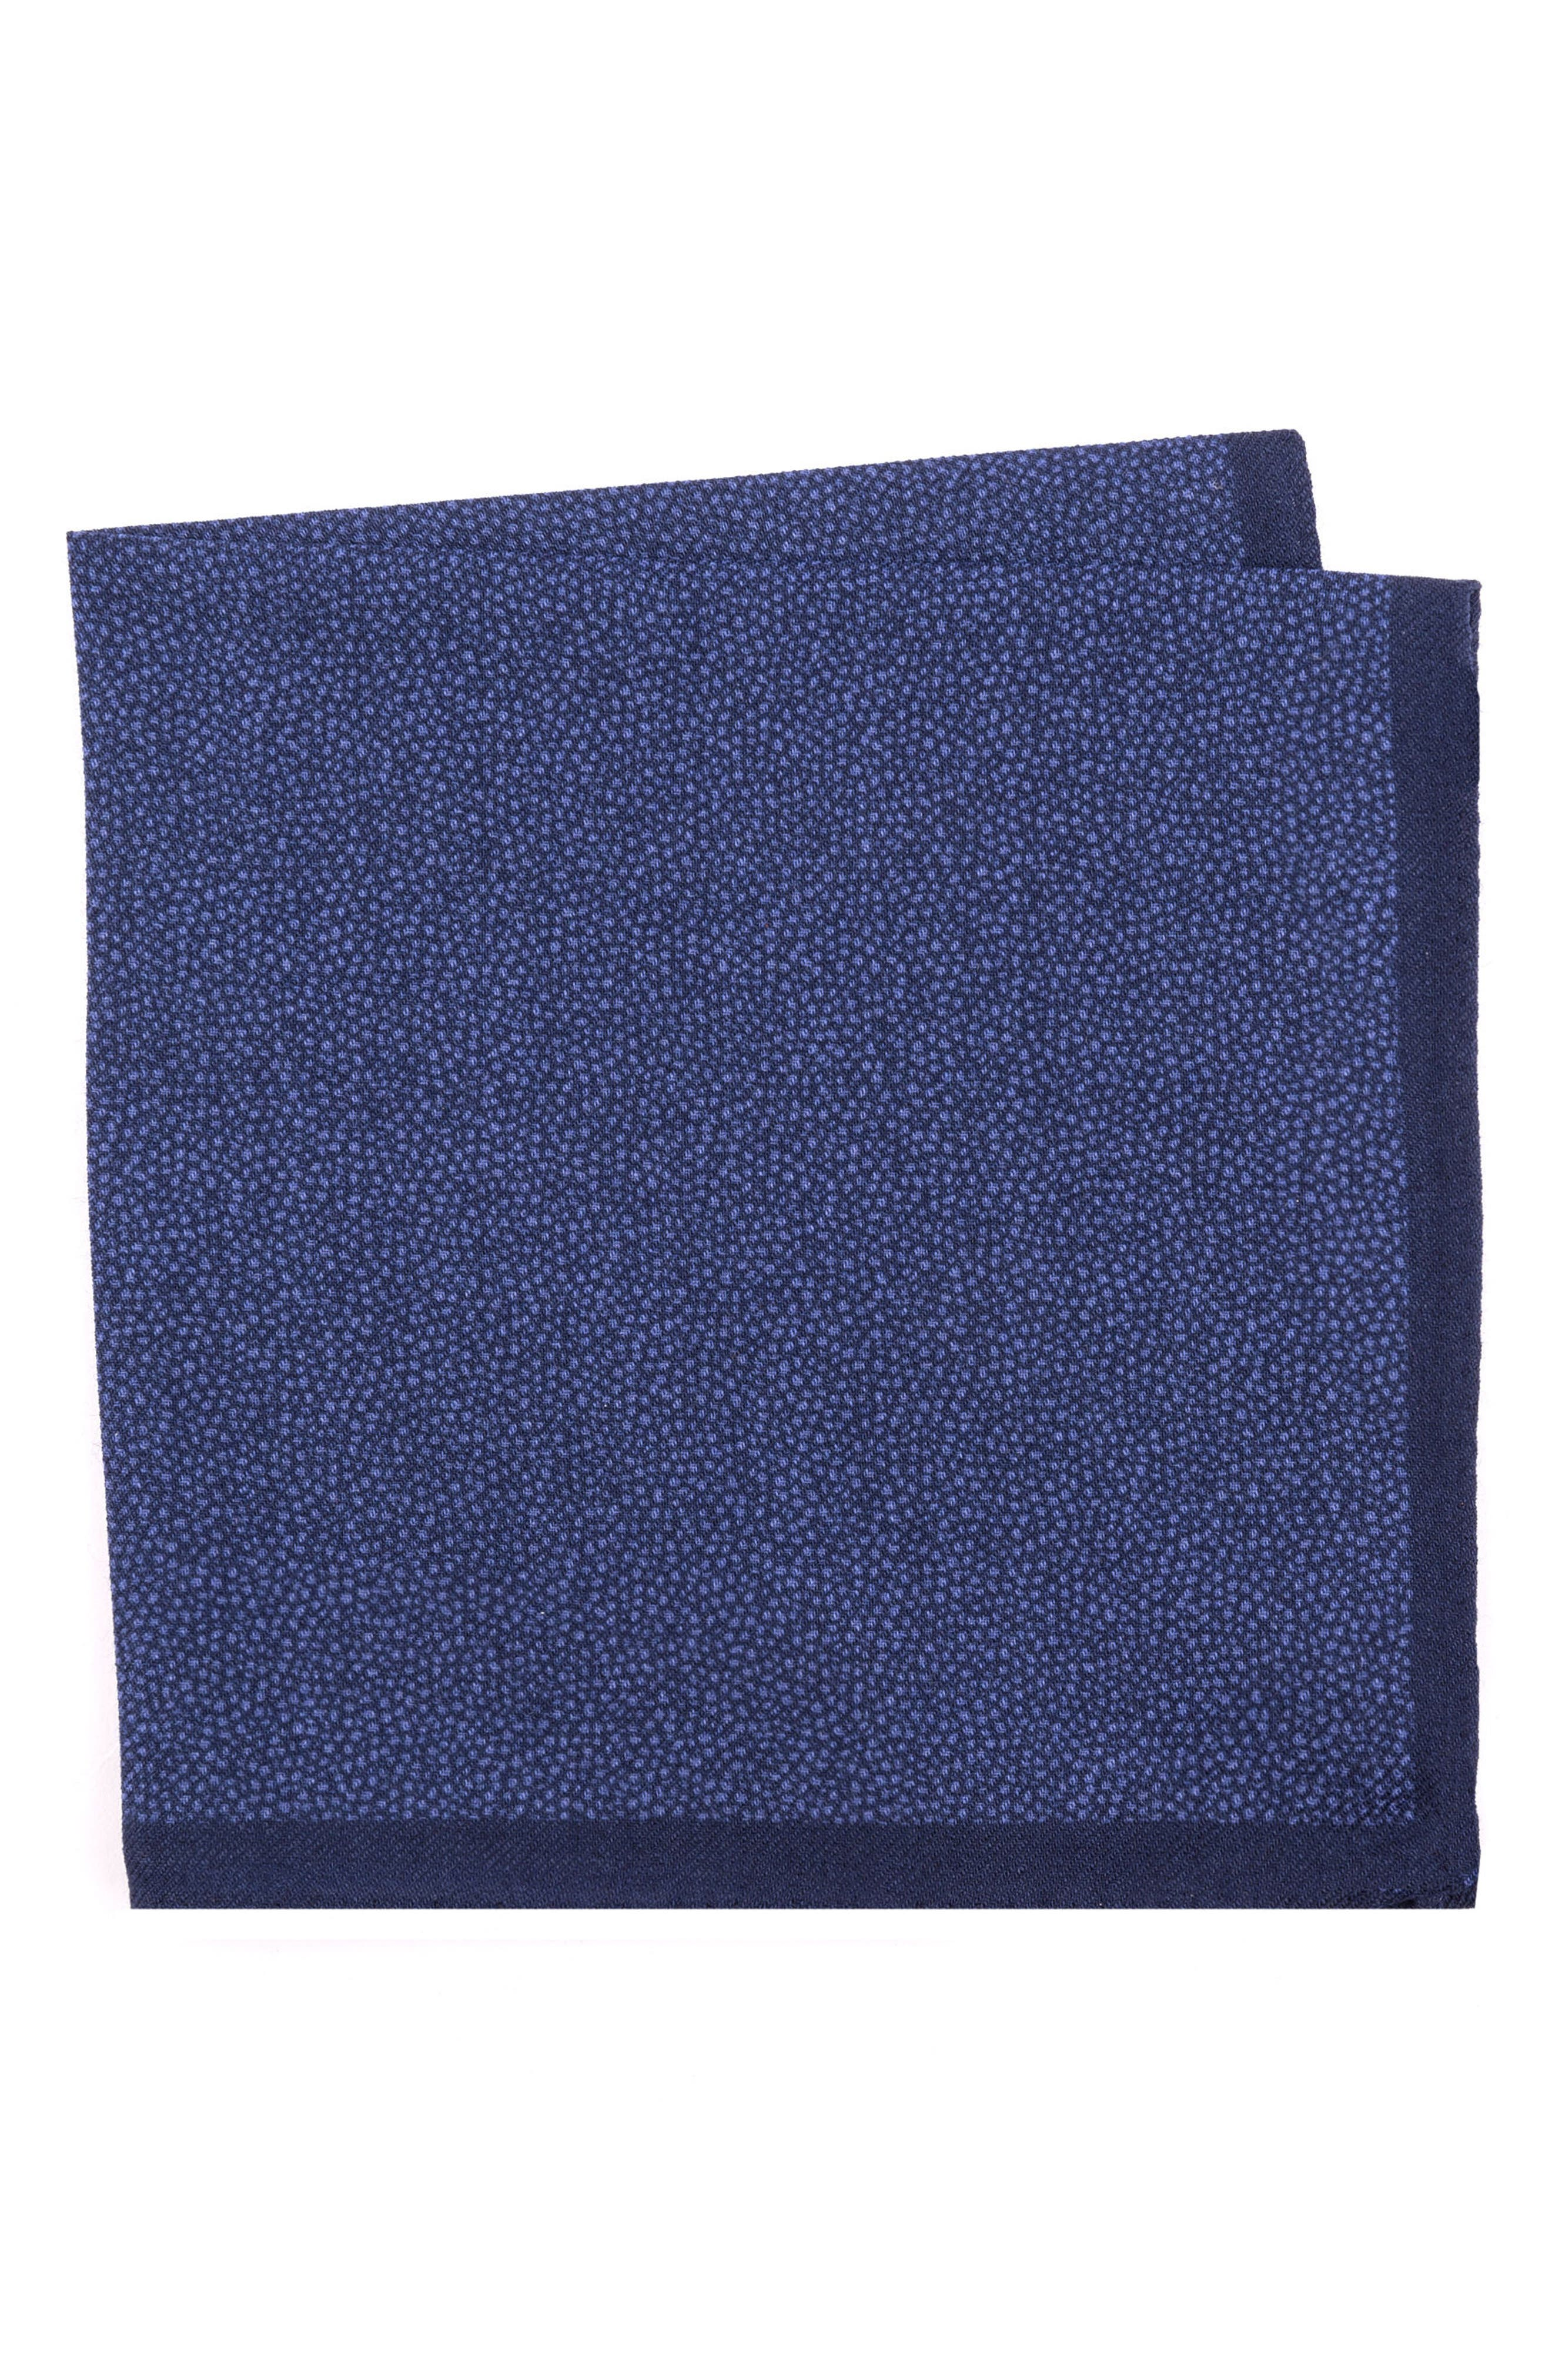 Main Image - Ted Baker London Dot Wool Pocket Square